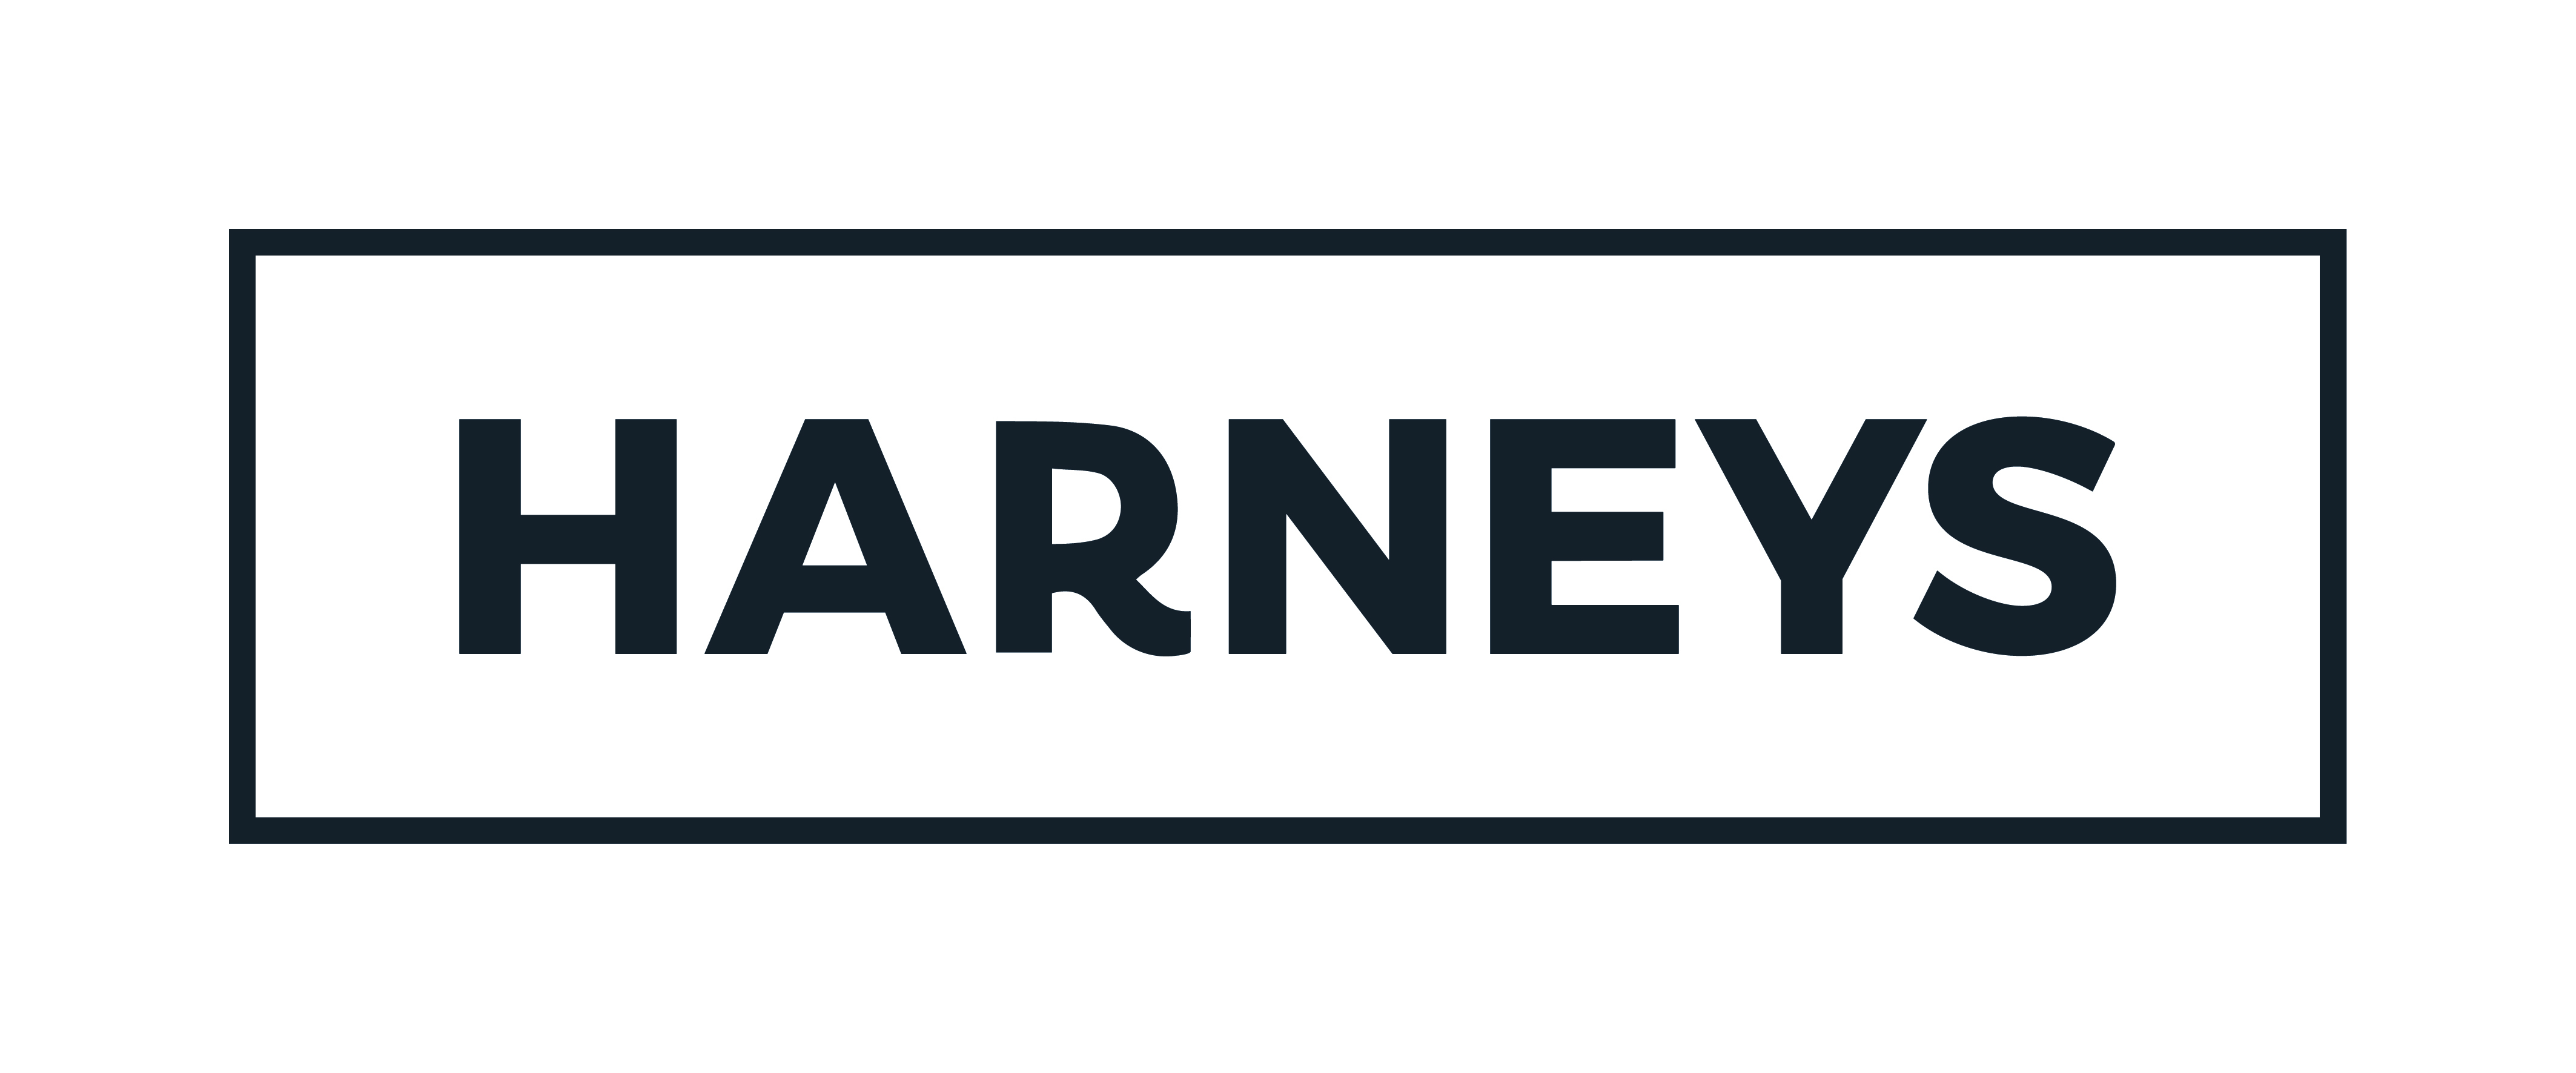 Harneys Sets New BVI Record for Largest Takeover of Publicly-Listed BVI Company